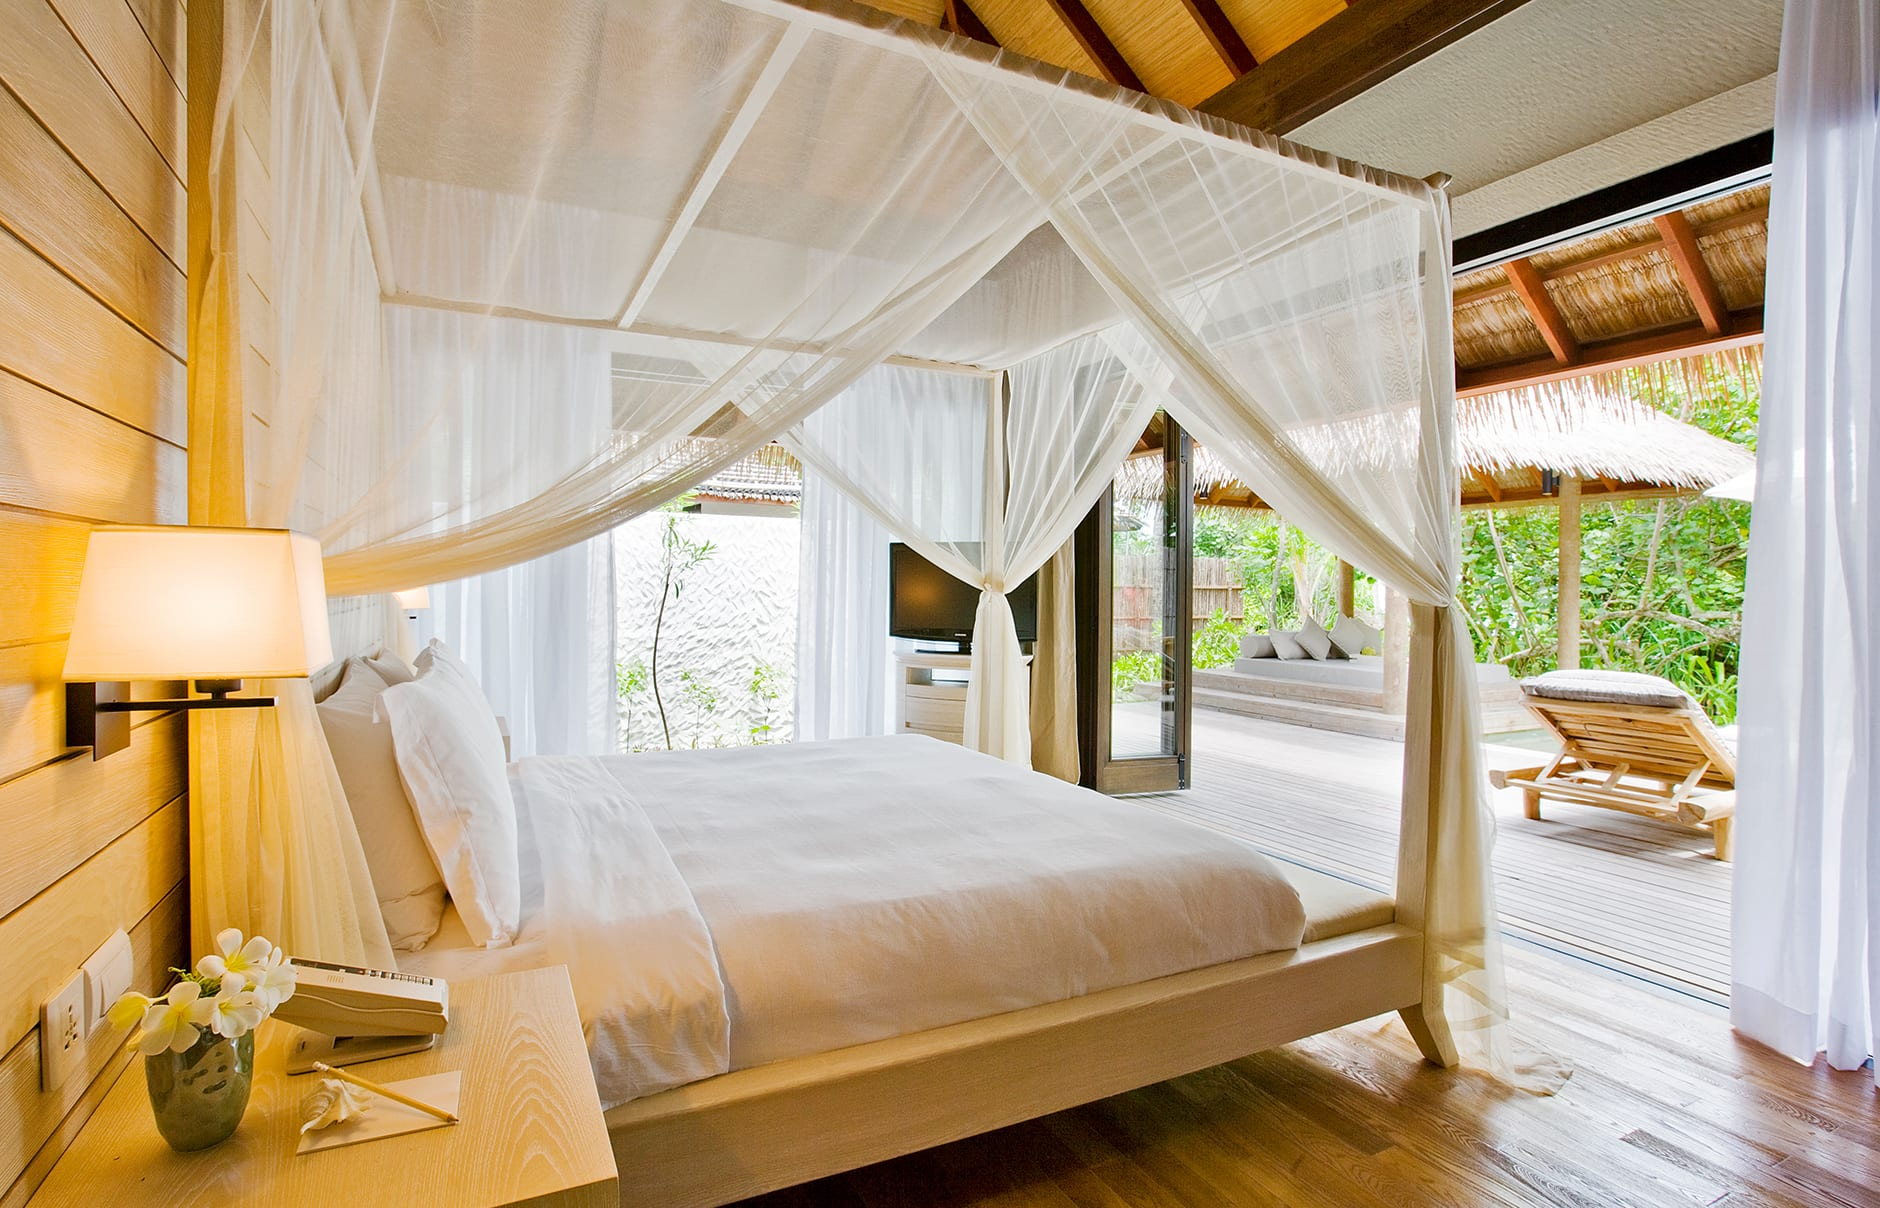 Garden Suite bedroom. COMO Maalifushi, Maldives. Hotel Review by TravelPlusStyle. Photo © COMO Hotels & Resorts